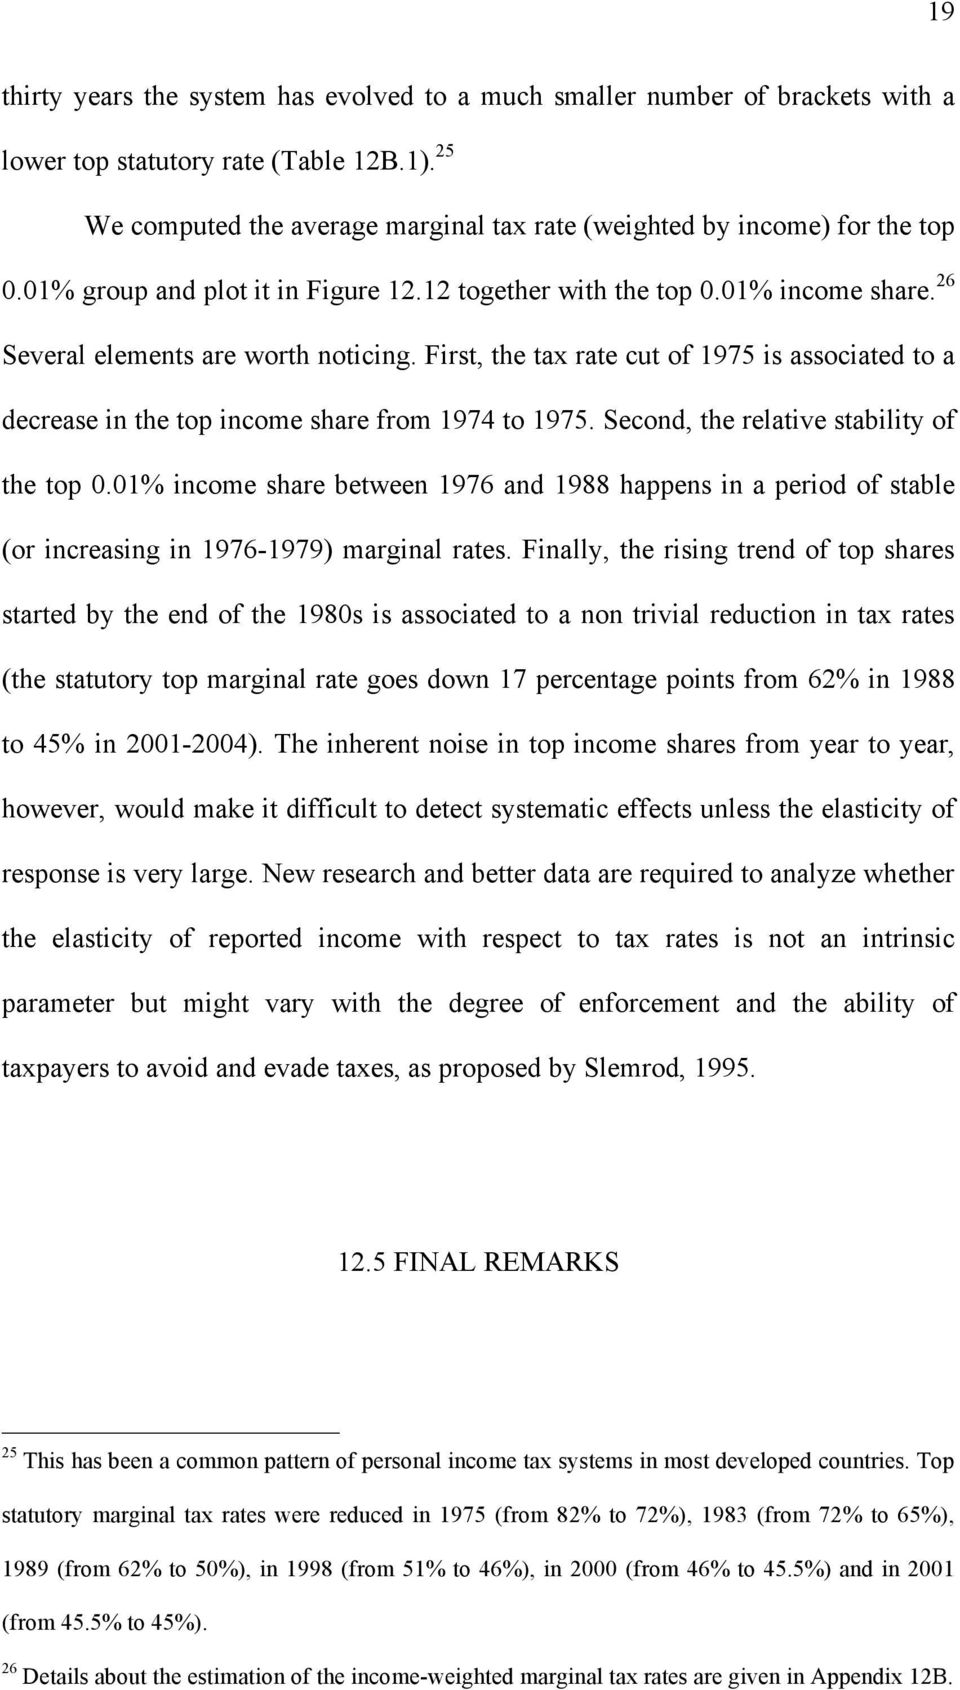 First, the tax rate cut of 1975 is associated to a decrease in the top income share from 1974 to 1975. Second, the relative stability of the top 0.